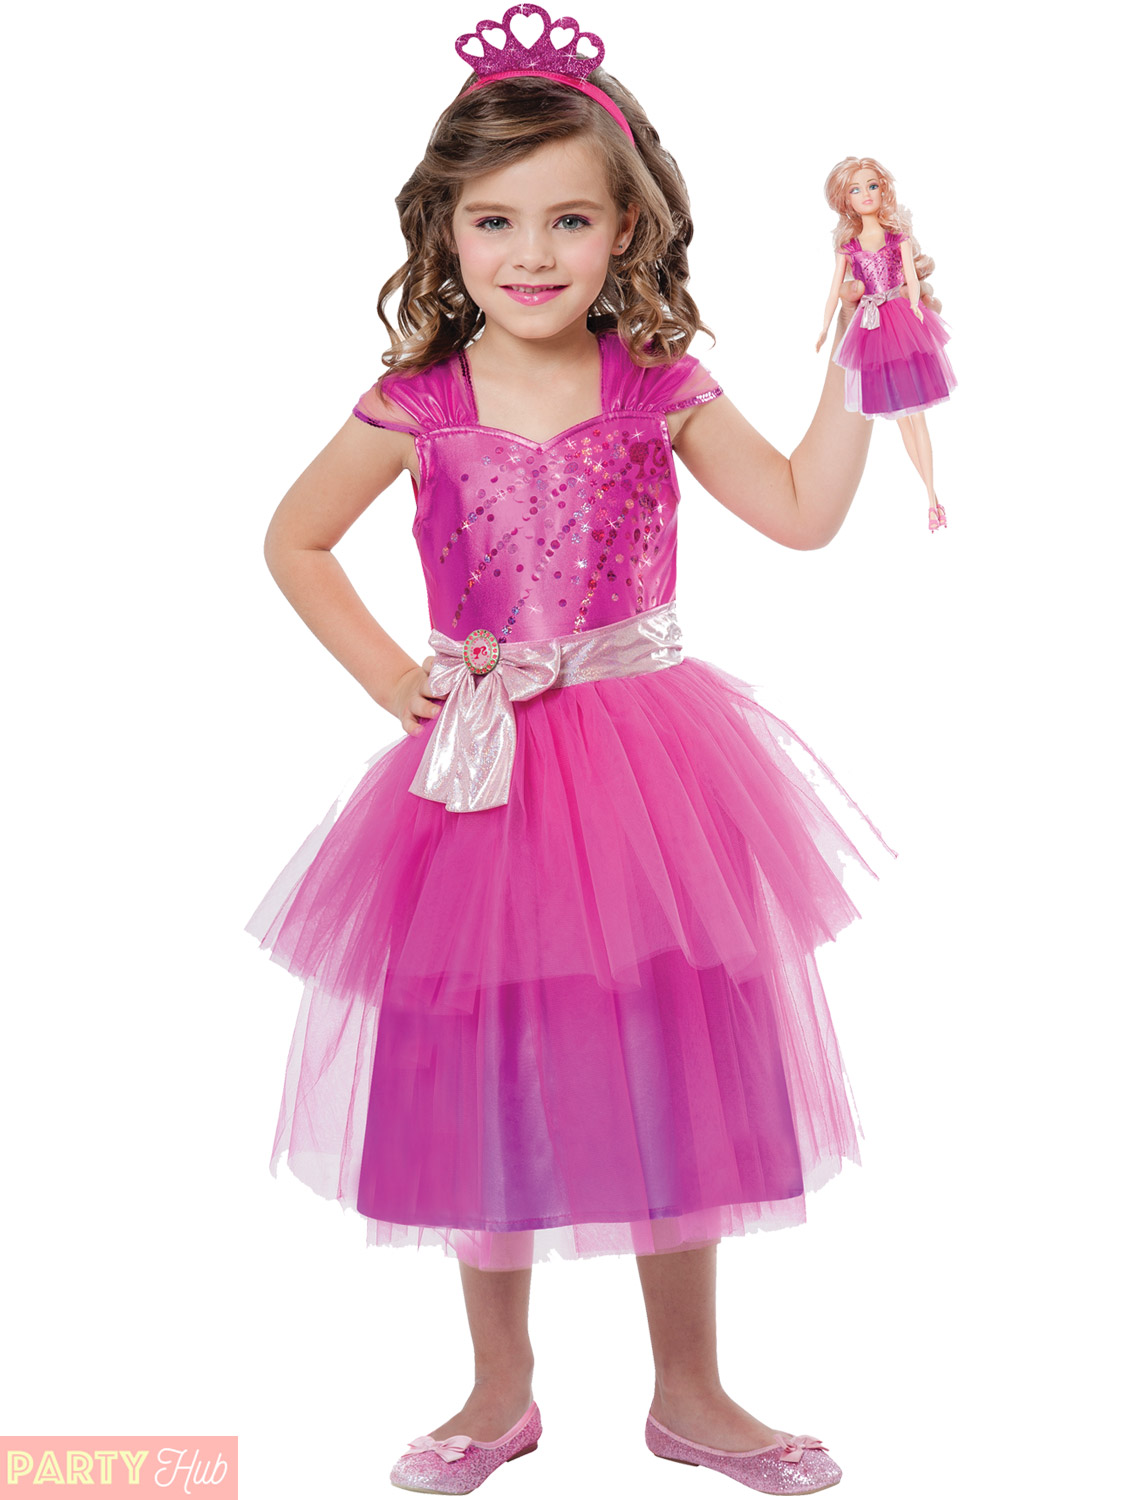 Barbie In Pink Dress And Ballet Shoes